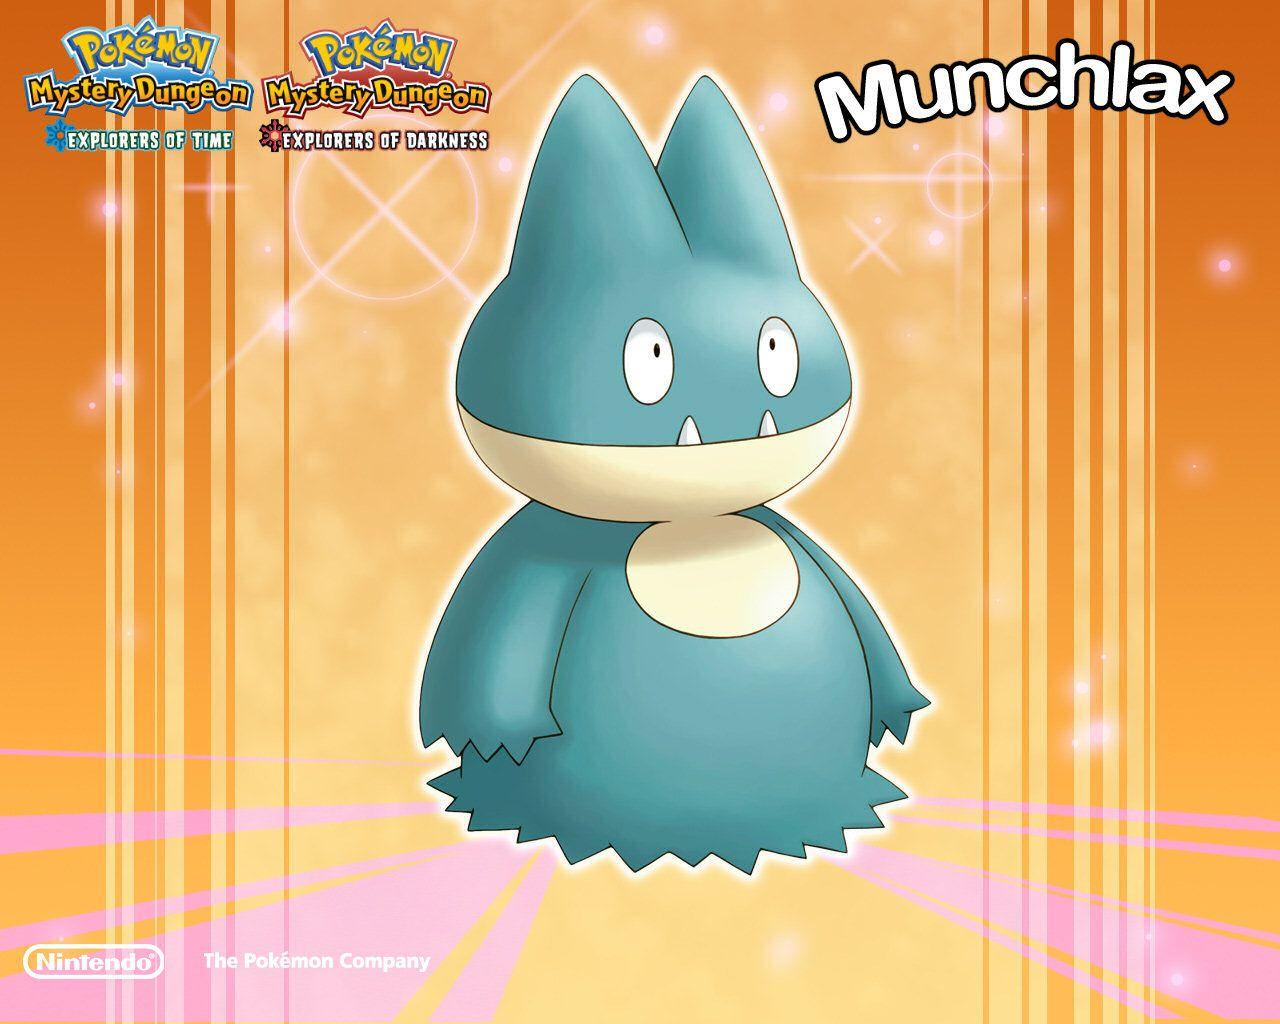 Munchlax Pokemon Wallpaper - Pokemon Wallpaper - Cartoon Watcher ...